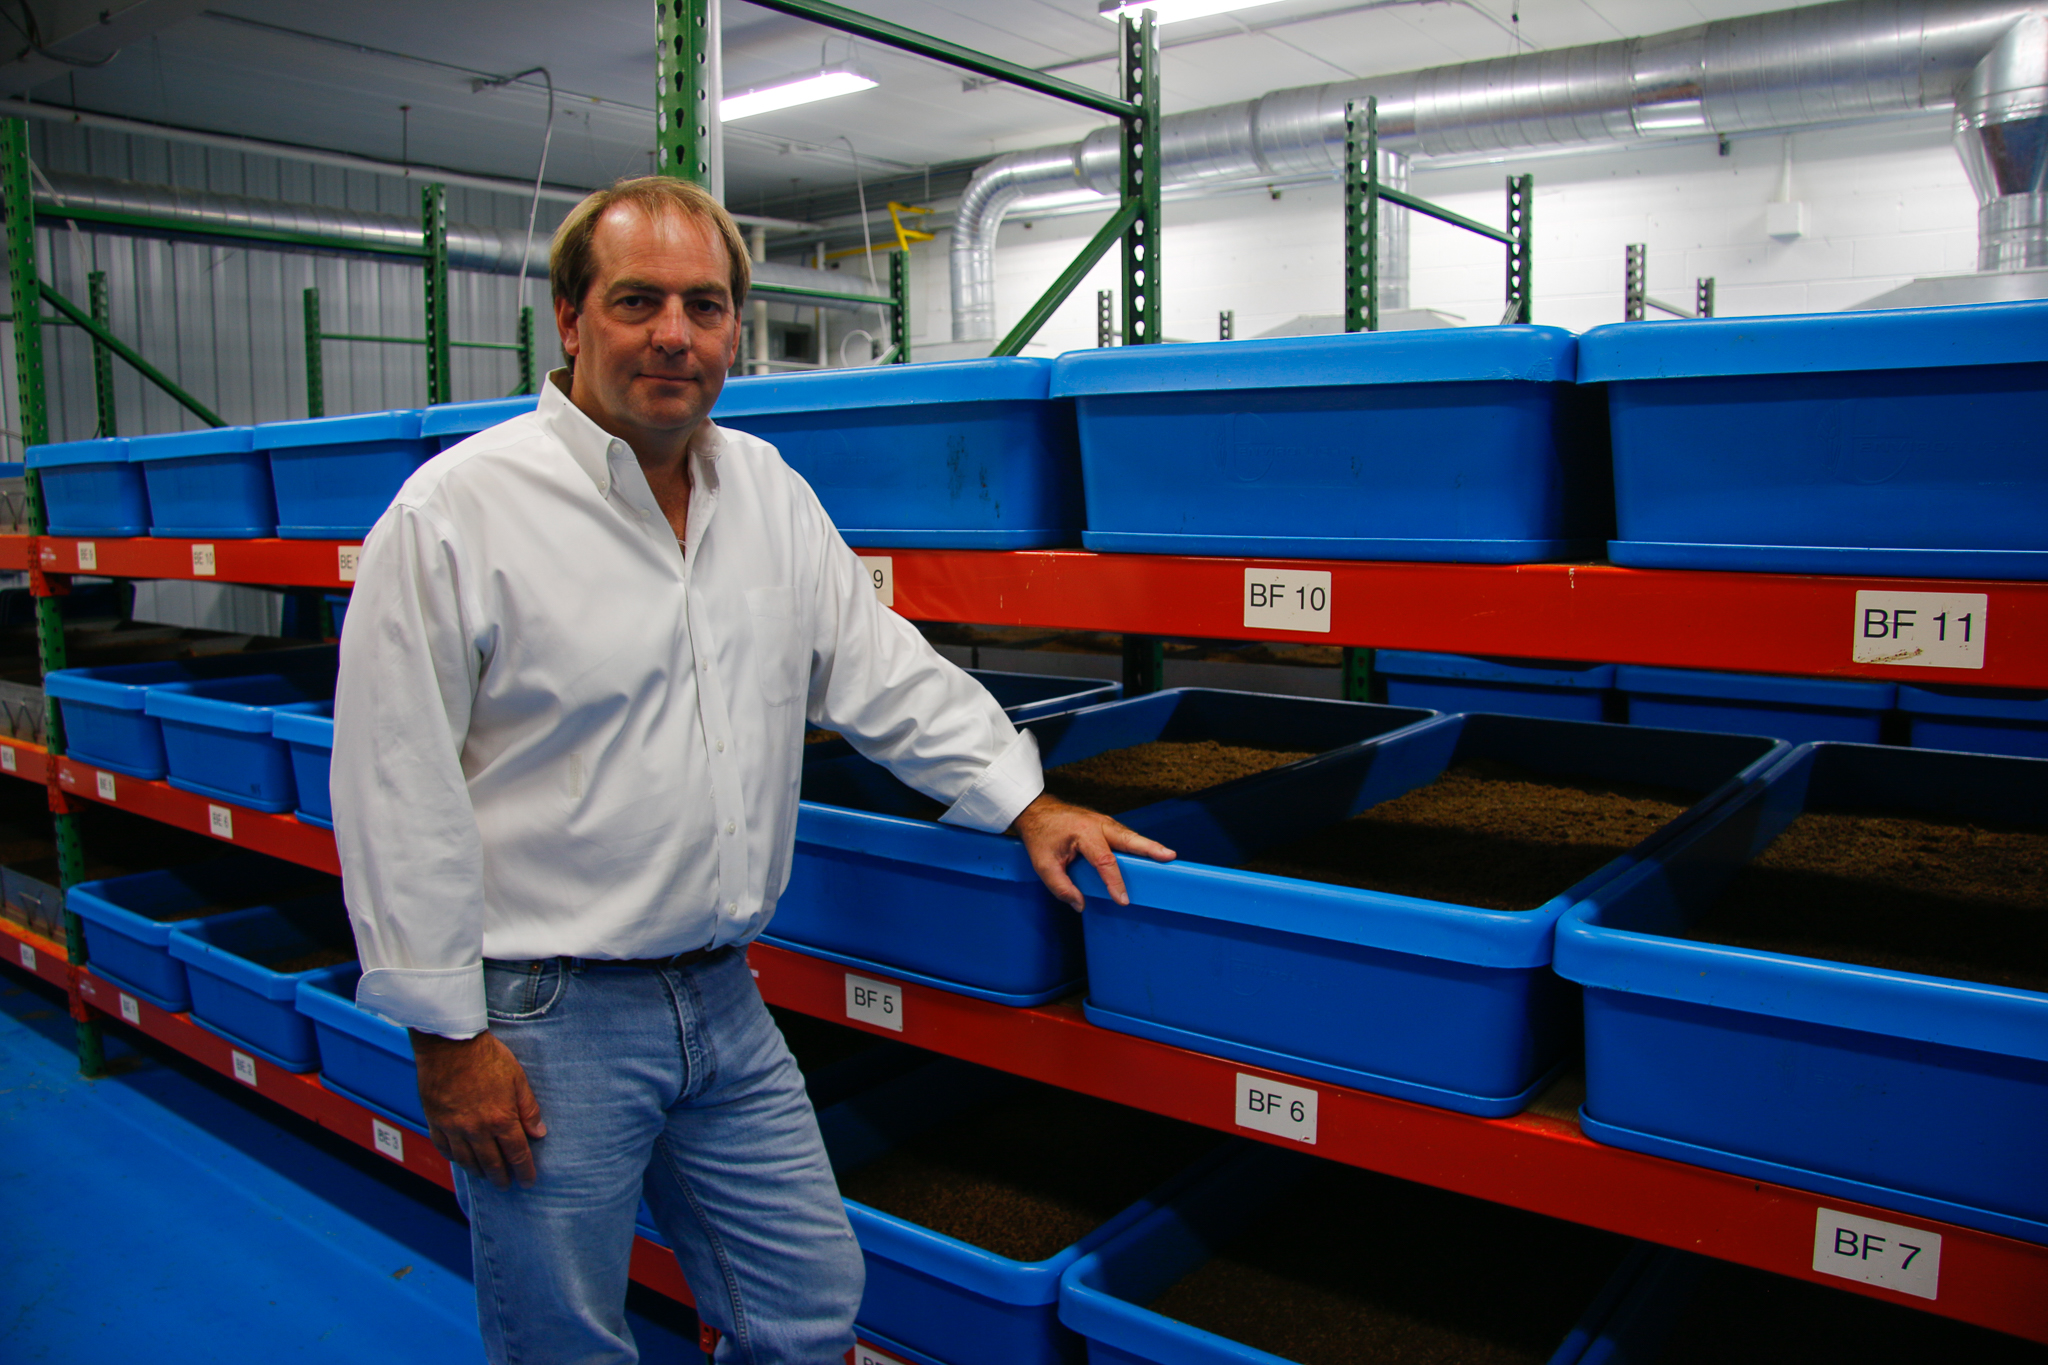 EnviroFlight CEO and founder Glen Courtright stands alongside bins of young larvae in his Ohio factory. In 2016, Courtirght's company was acquired by synthetic biology giant, Intrexon.